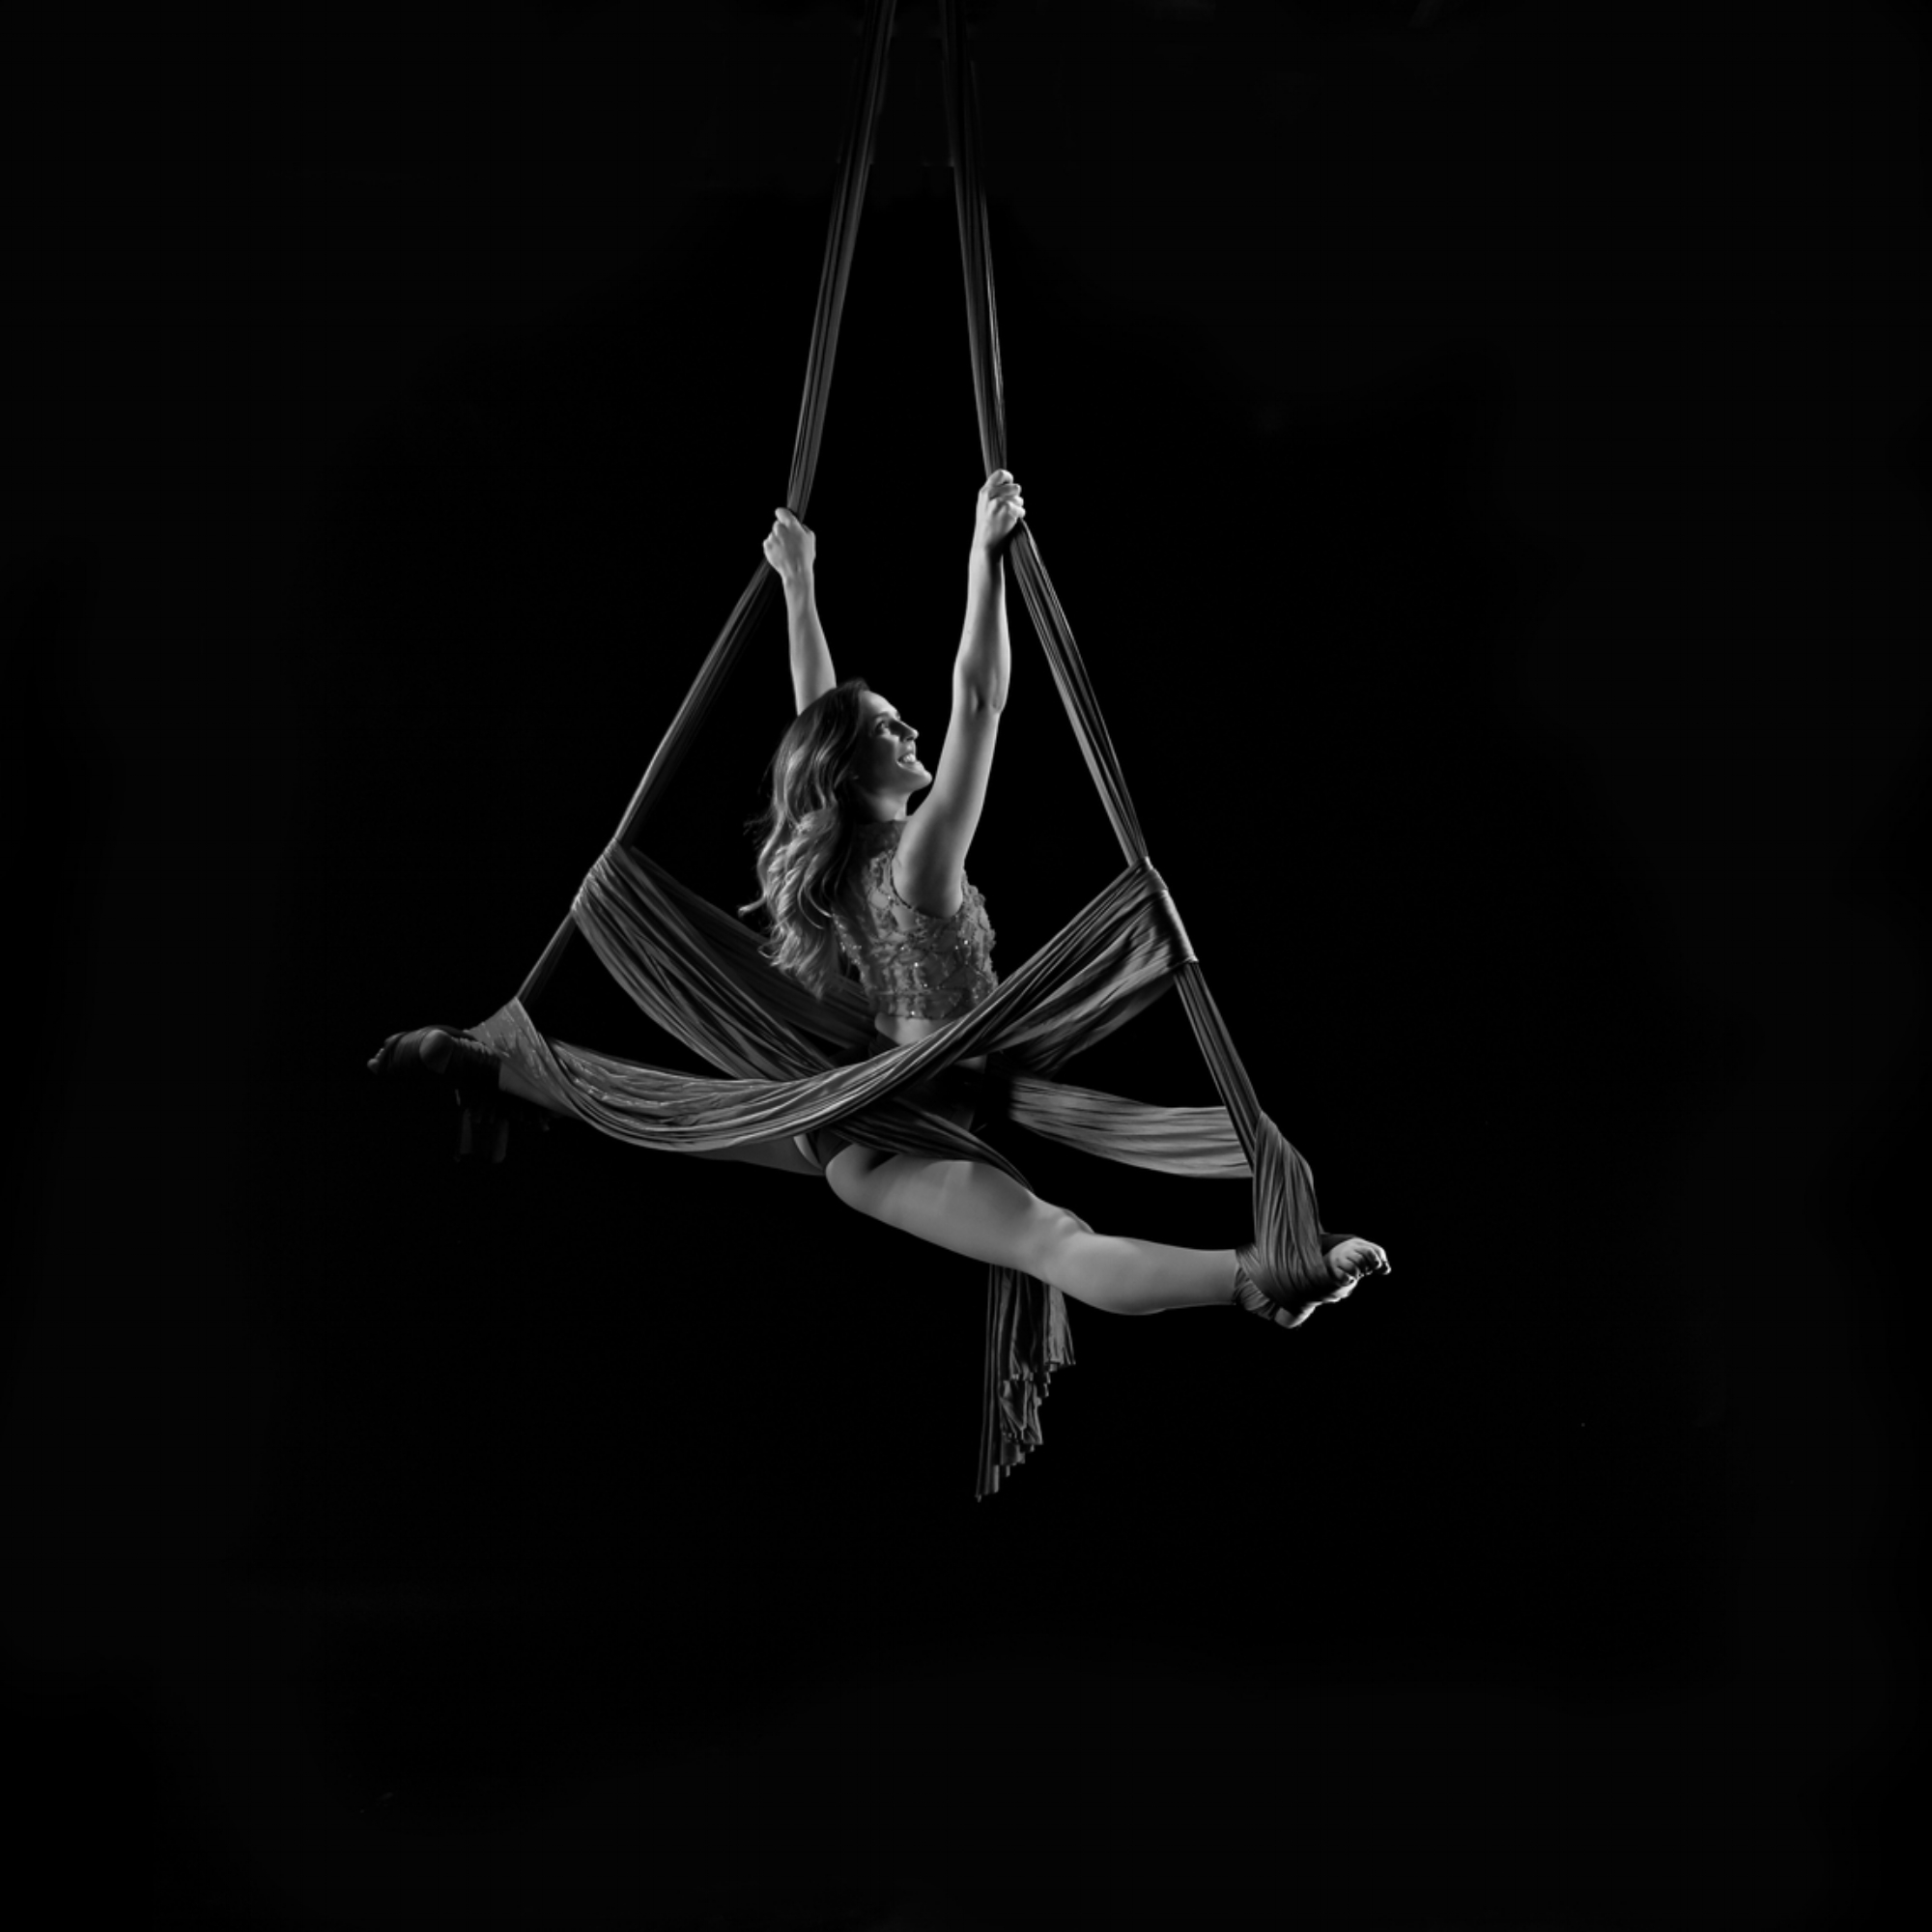 Aerial Silks - A vertical apparatus that consists of two long fabrics rigged from a central point. Artists move through a combination of climbs, foot locks and wraps to create dance sequences while suspended in the air.